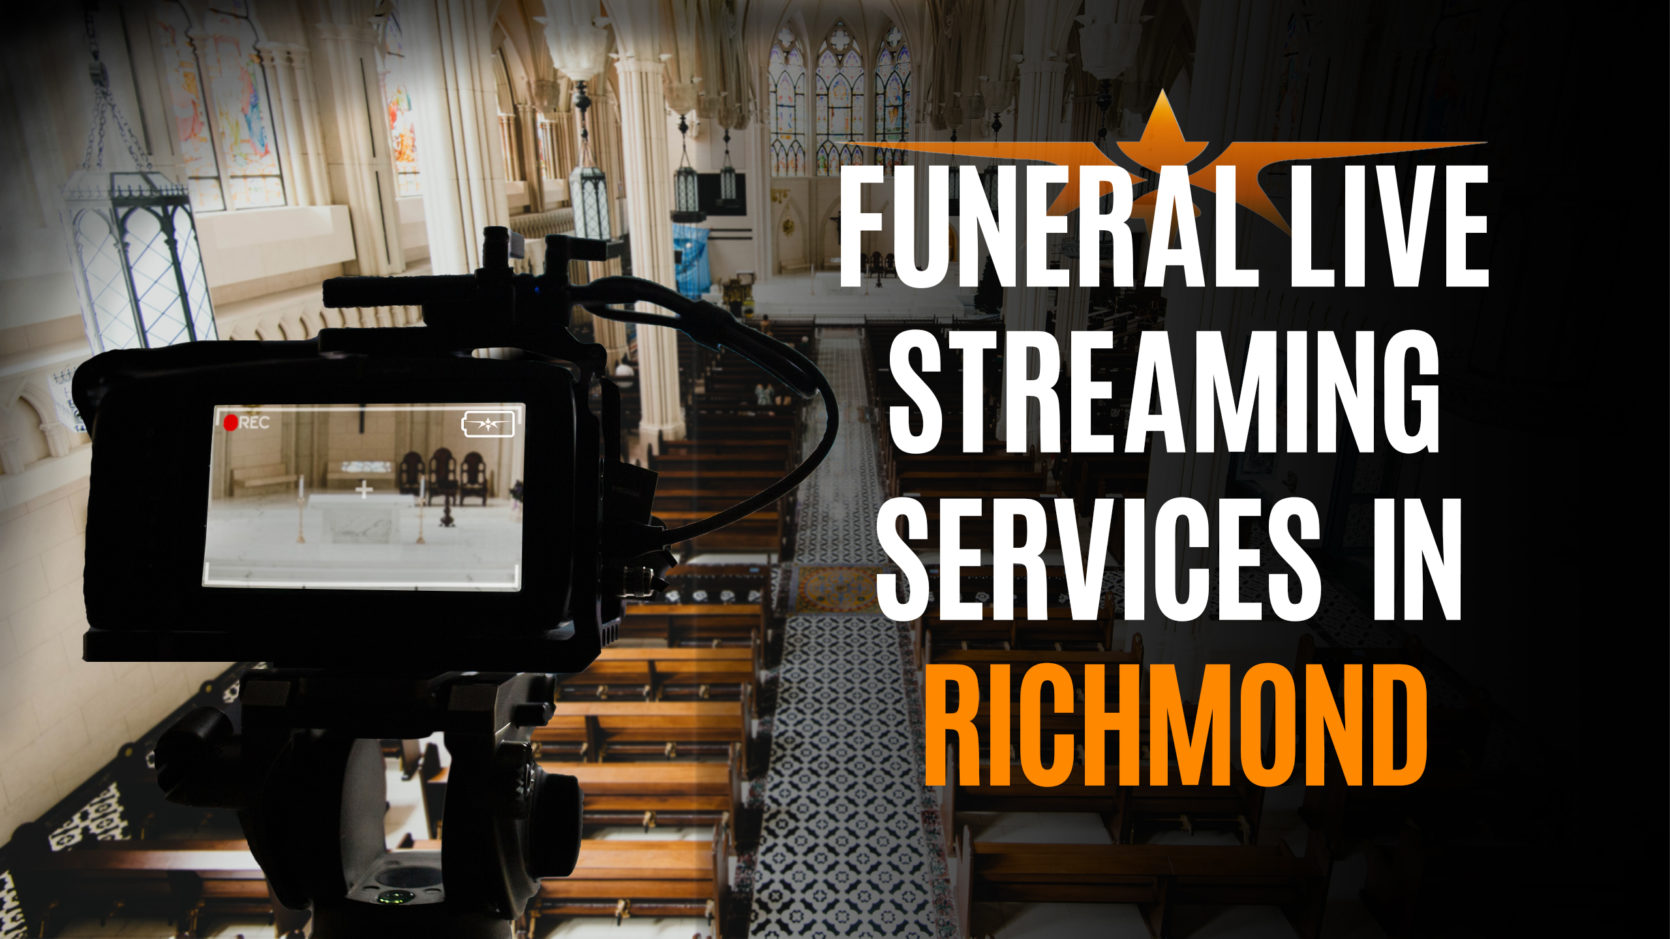 Funeral Live Streaming Services in Richmond